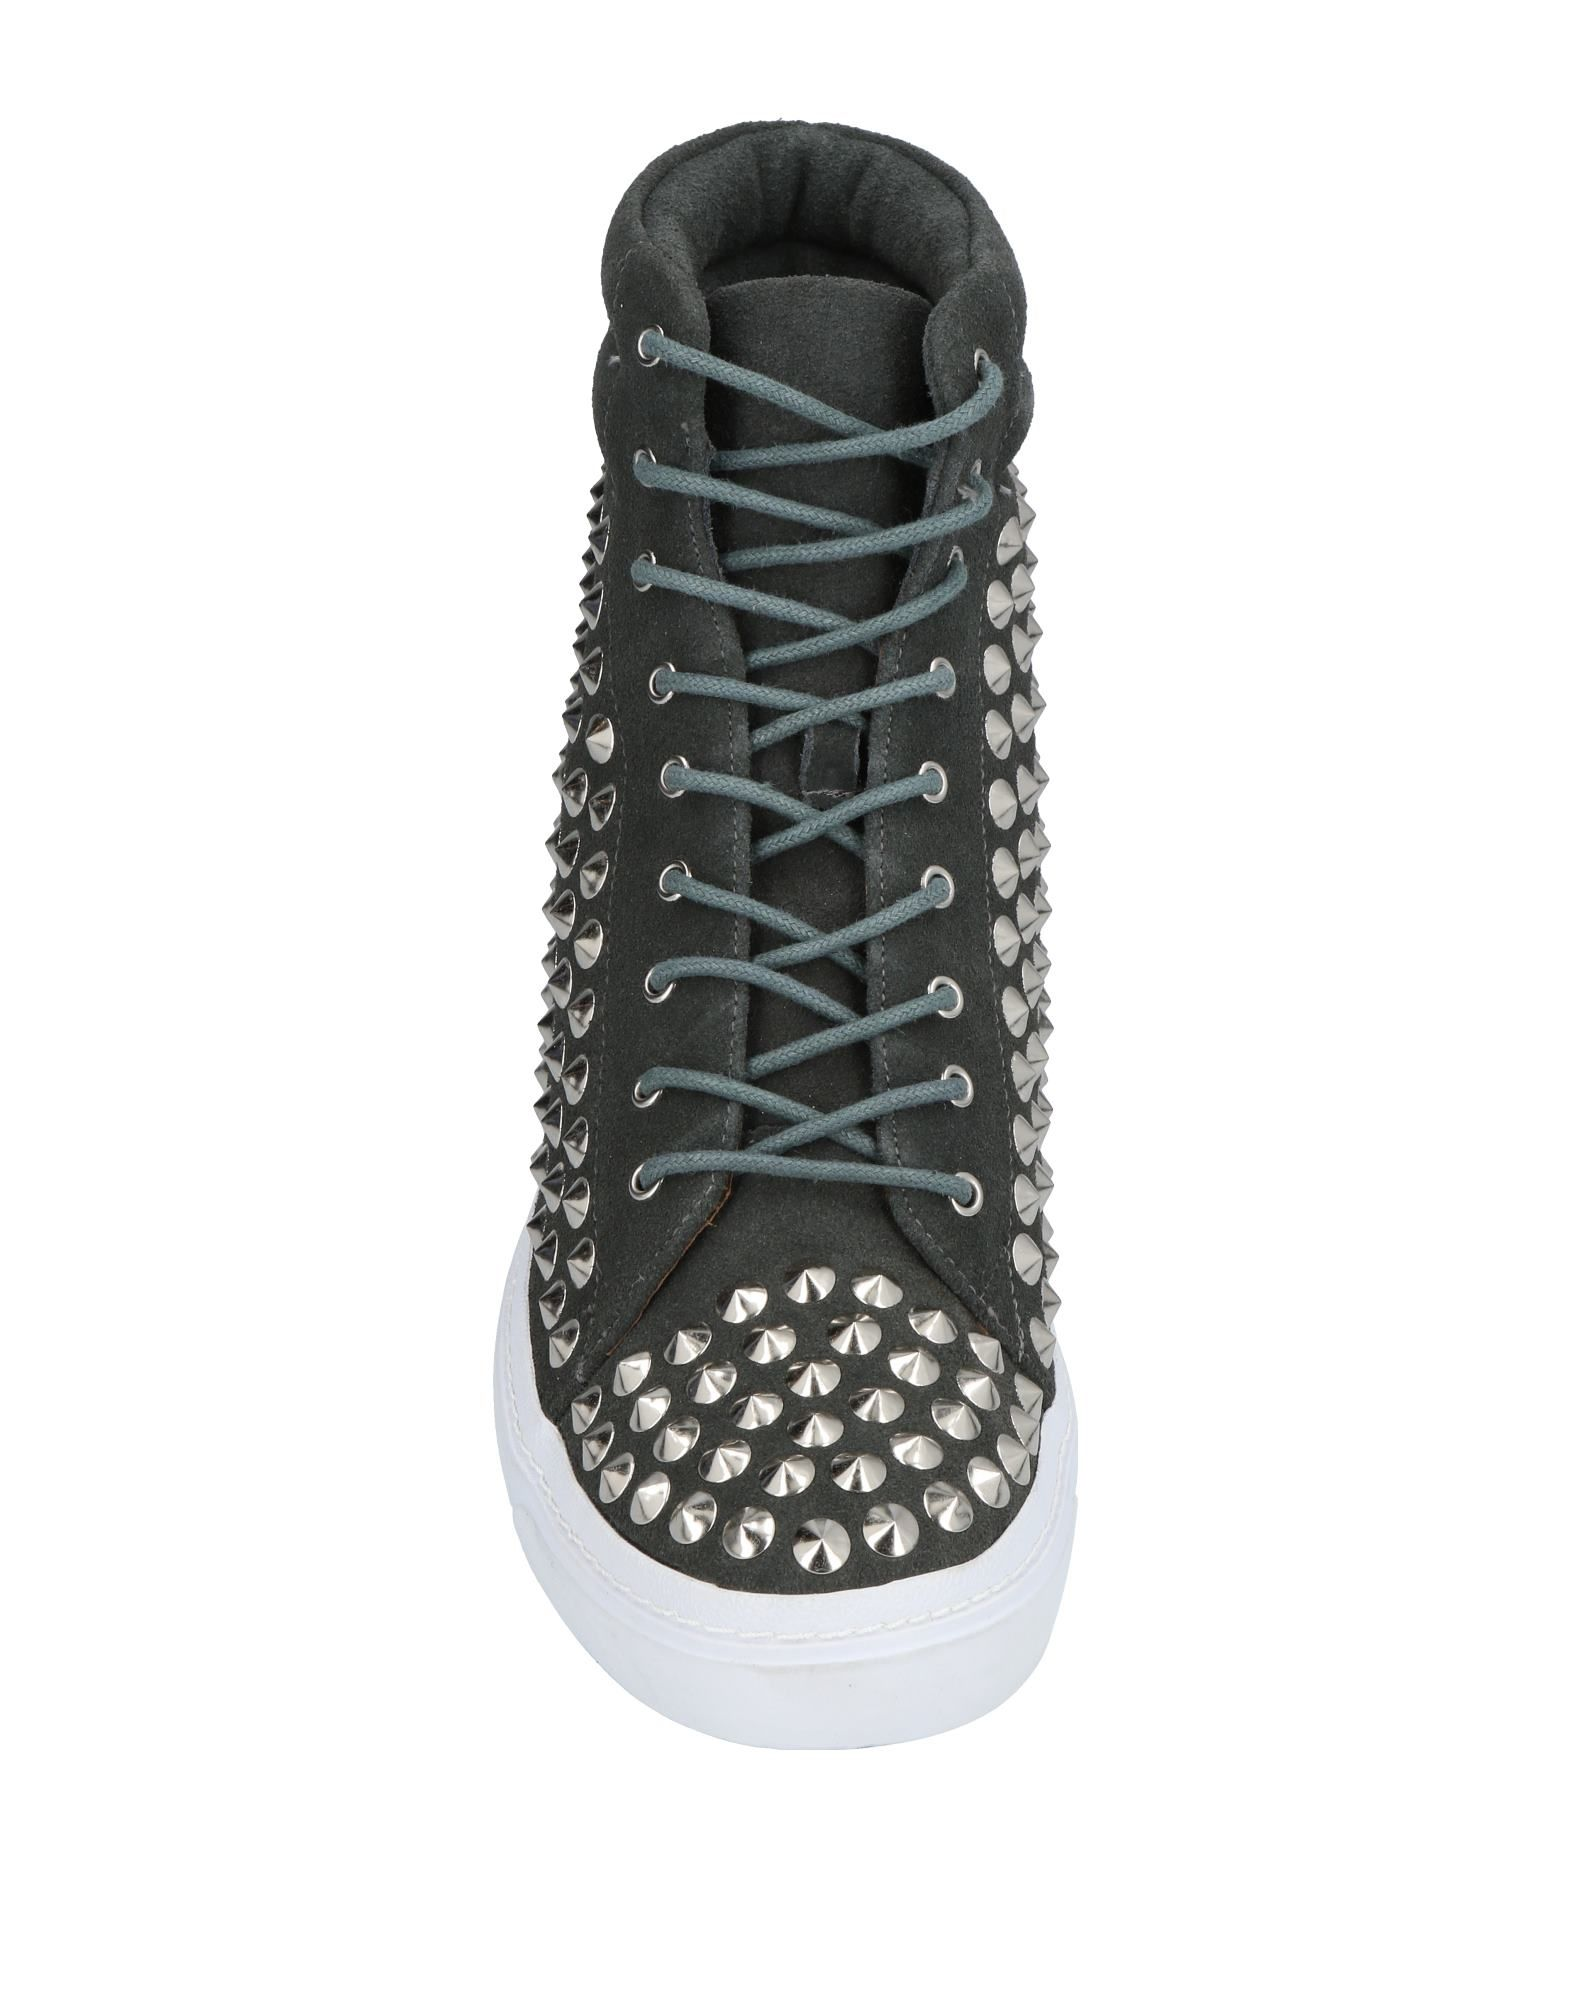 ead54a270d8 JEFFREY CAMPBELL ΠΑΠΟΥΤΣΙΑ Χαμηλά sneakers, Γυναικεία sneakers, ΓΥΝΑΙΚΑ |  ΠΑΠΟΥΤΣΙΑ | SNEAKERS